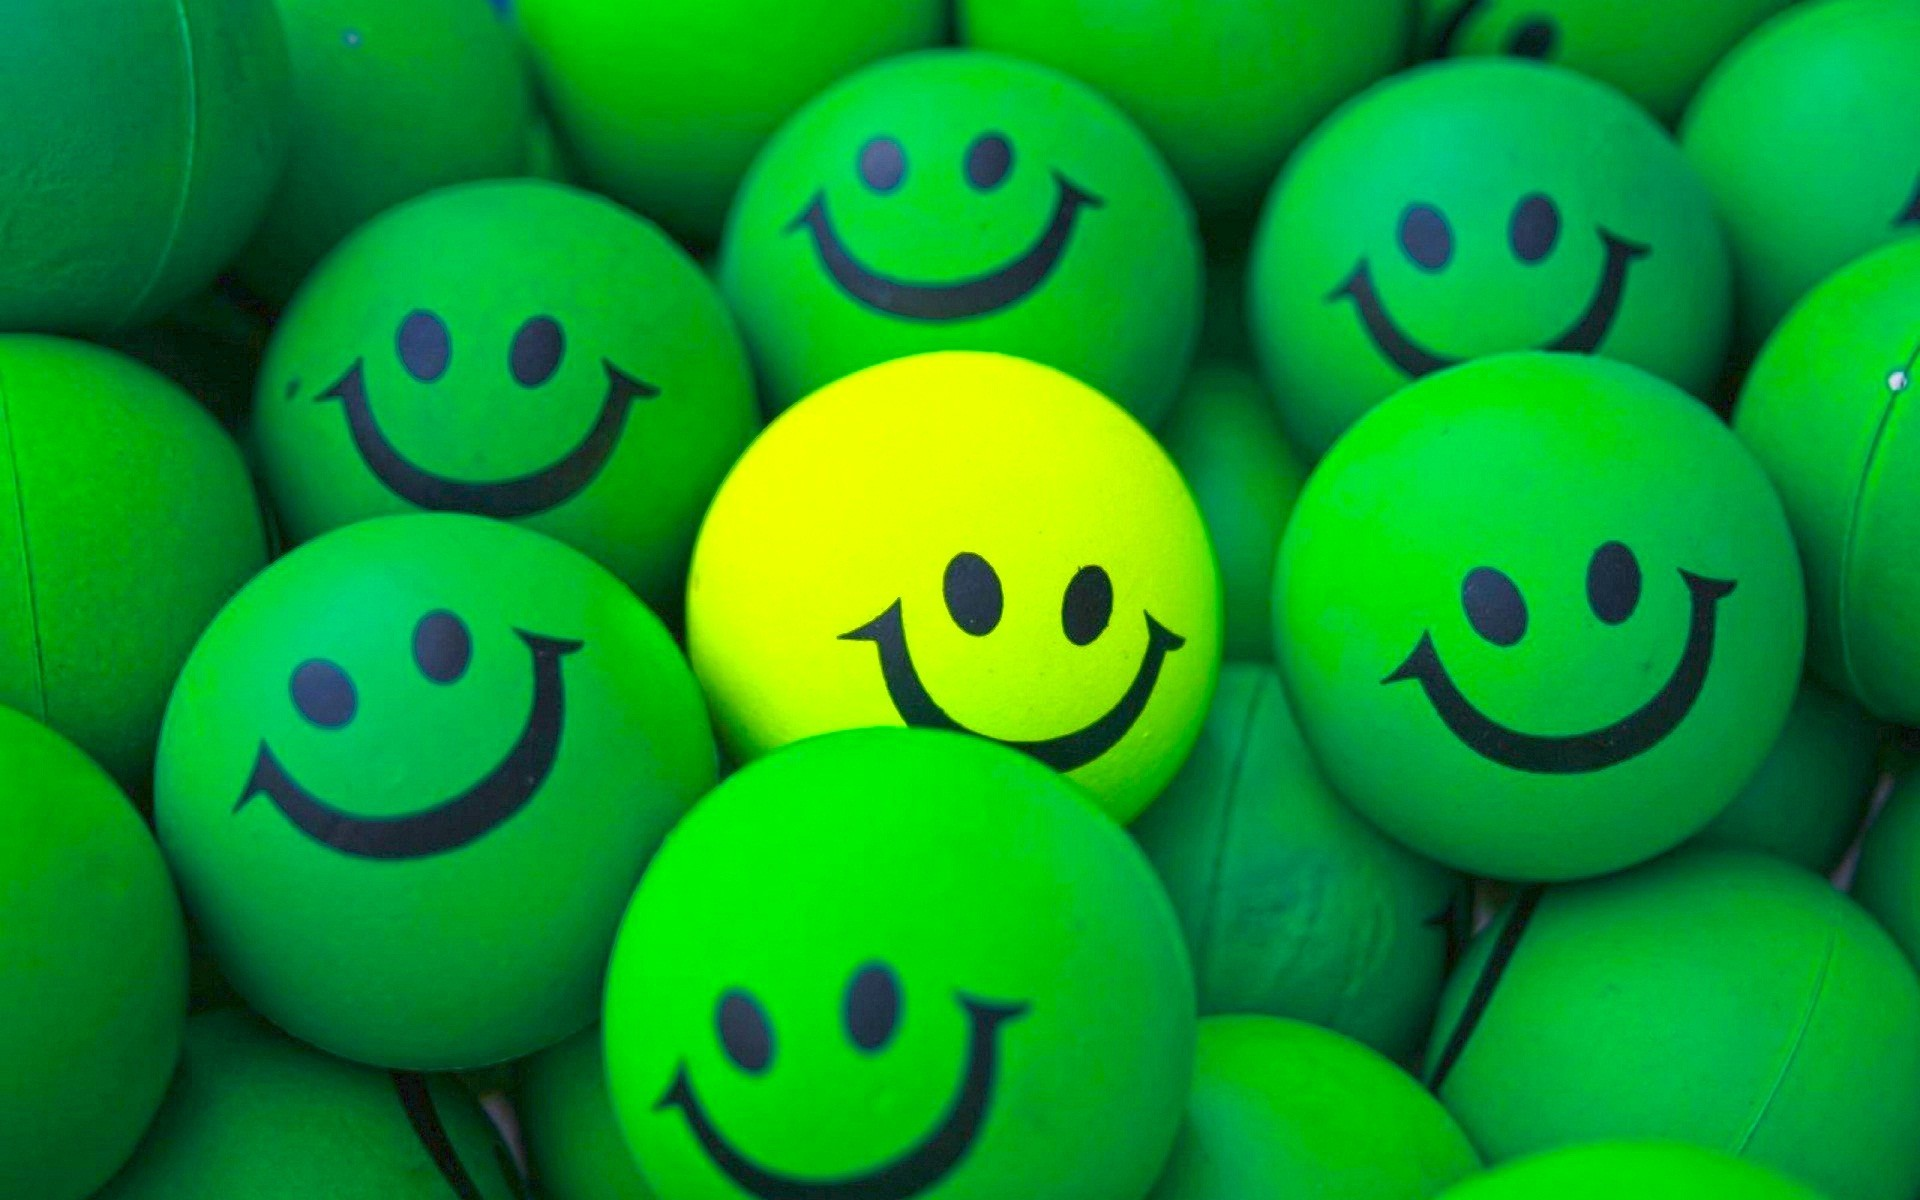 Happy face wallpapers 54 images 2118x2116 144324522 happy faces wallpapers happy faces backgrounds voltagebd Gallery